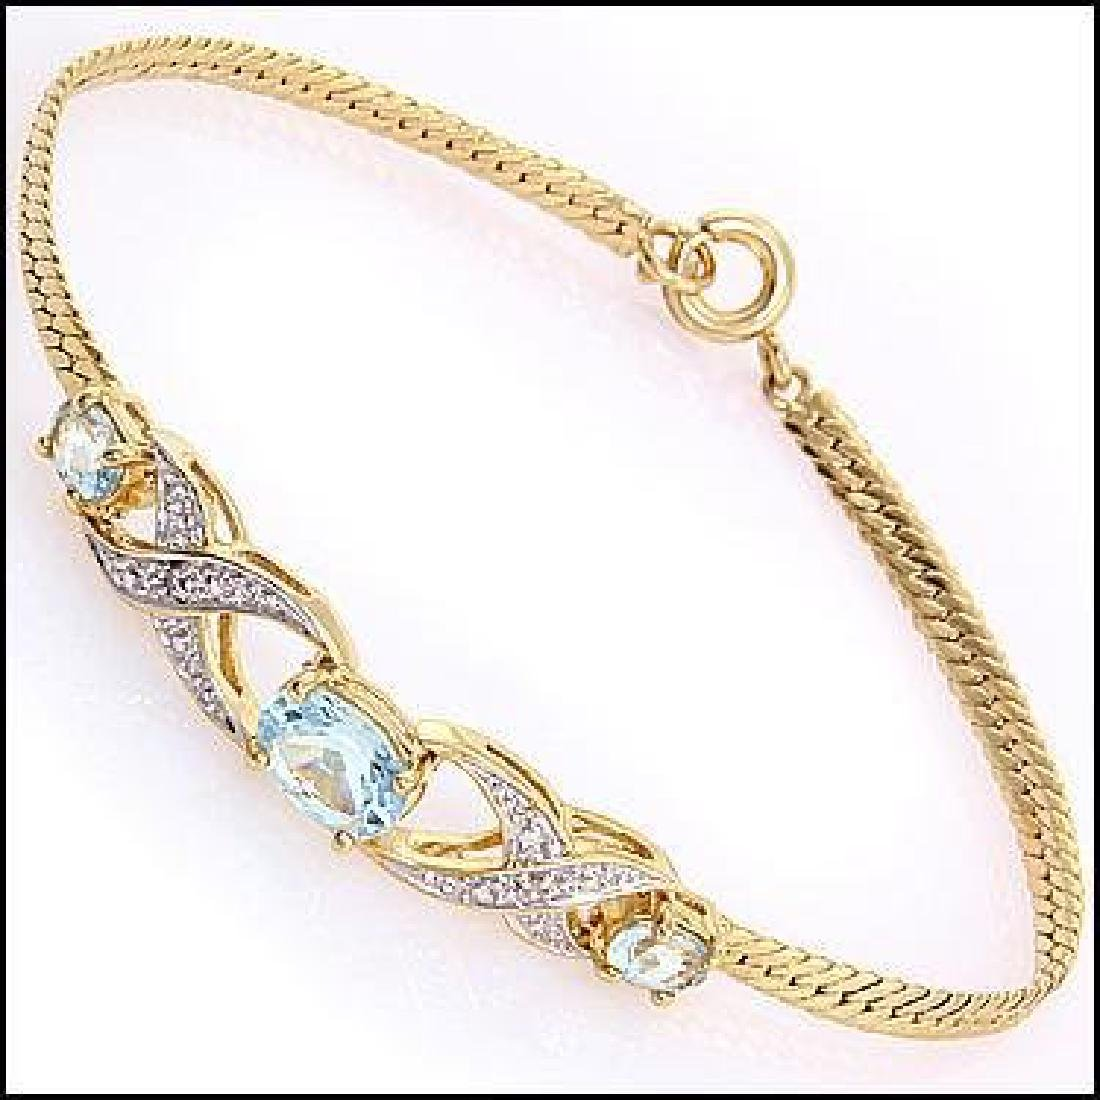 3.89 CT Blue Topaz & Diamond Designer Bracelet $965